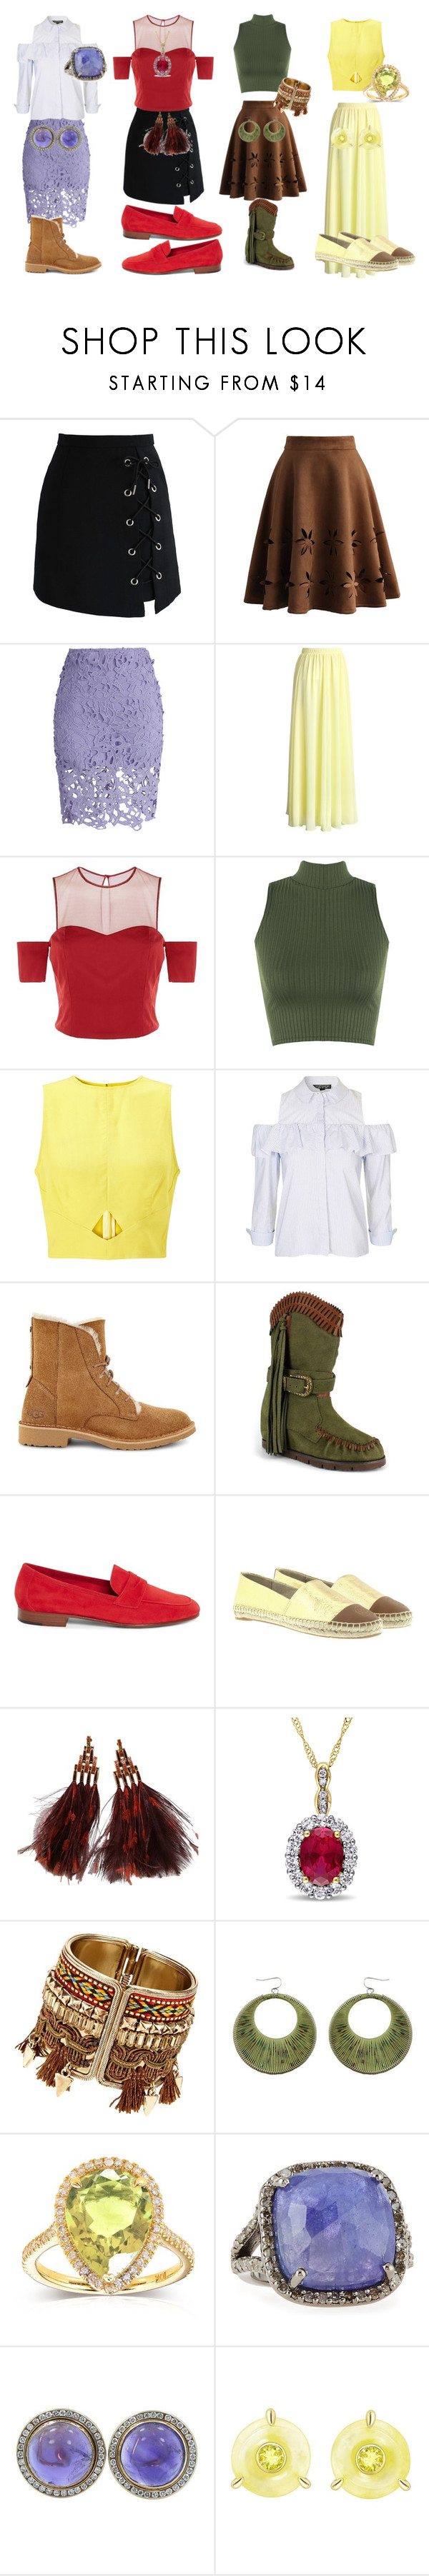 """""""Geen titel #216"""" by sweetytrends ❤ liked on Polyvore featuring Chicwish, Pinko, WearAll, Miss Selfridge, Topshop, UGG, Mojo Moxy, Tory Burch, Louis Vuitton and Kobelli"""